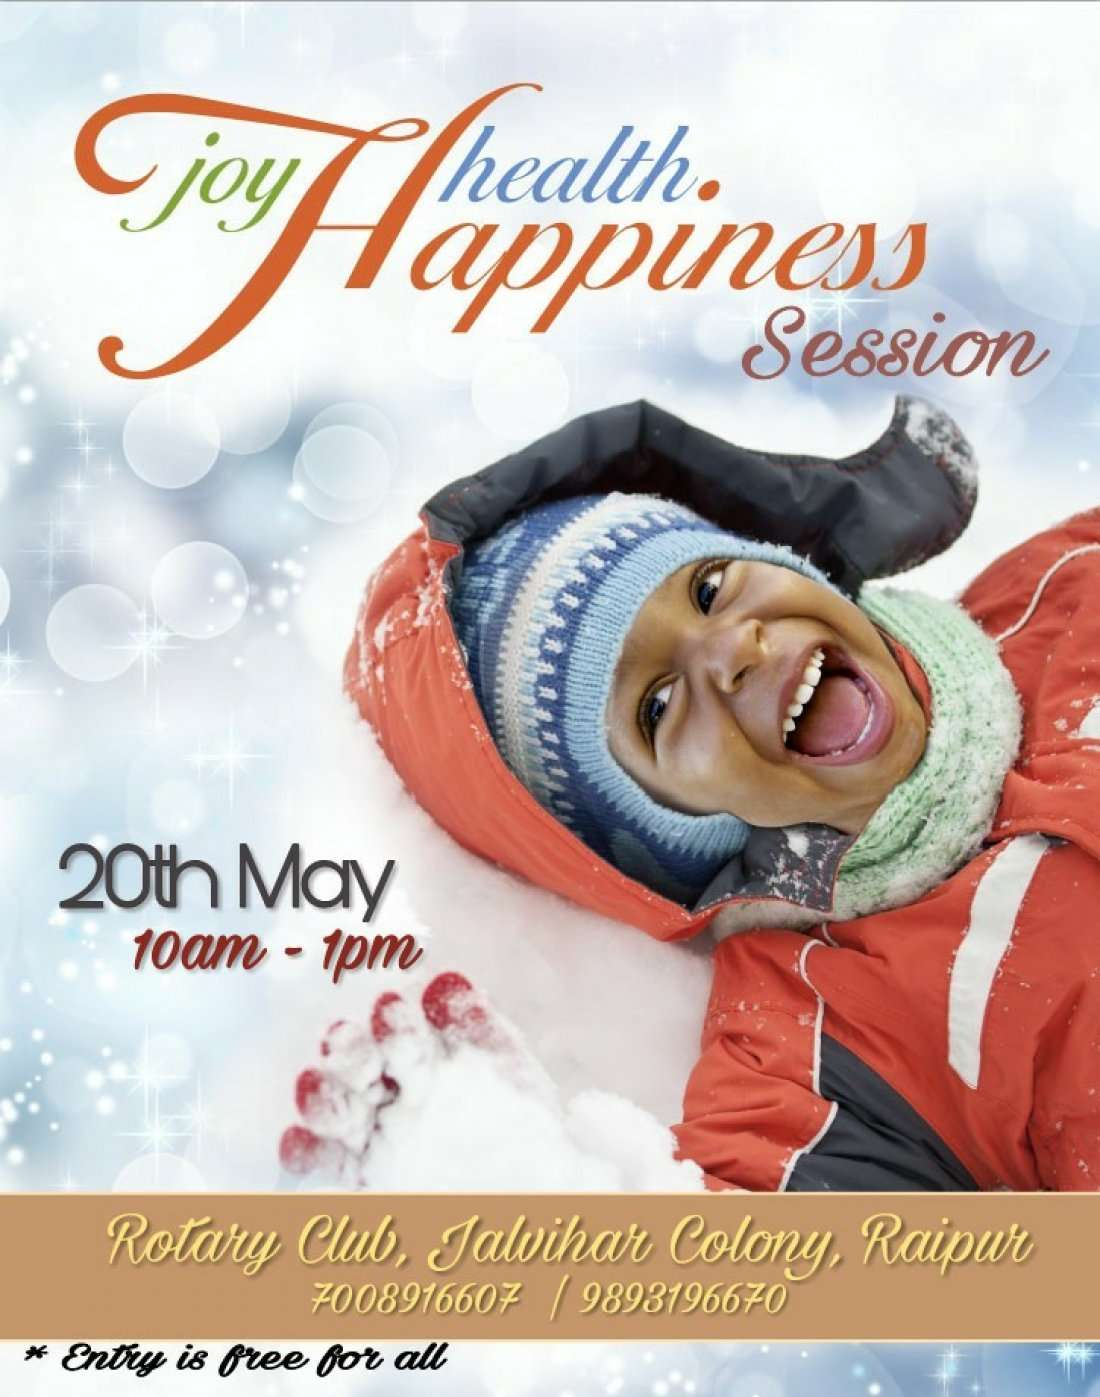 Joy Health and Happiness Session